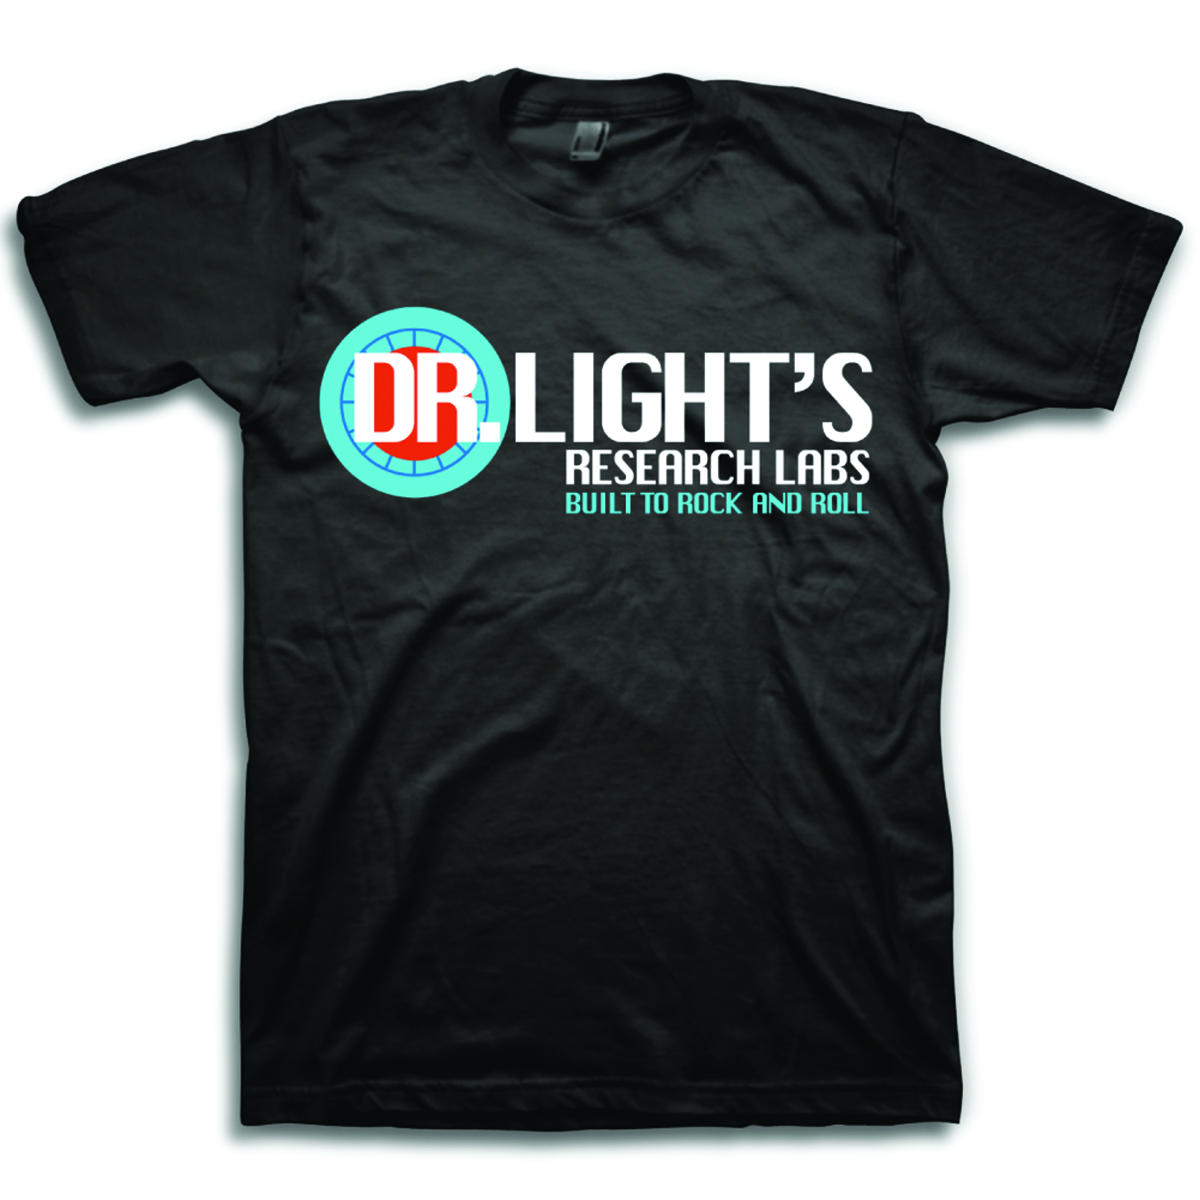 MEGA MAN DR LIGHTS RESEARCH LAB PX BLK T/S SM